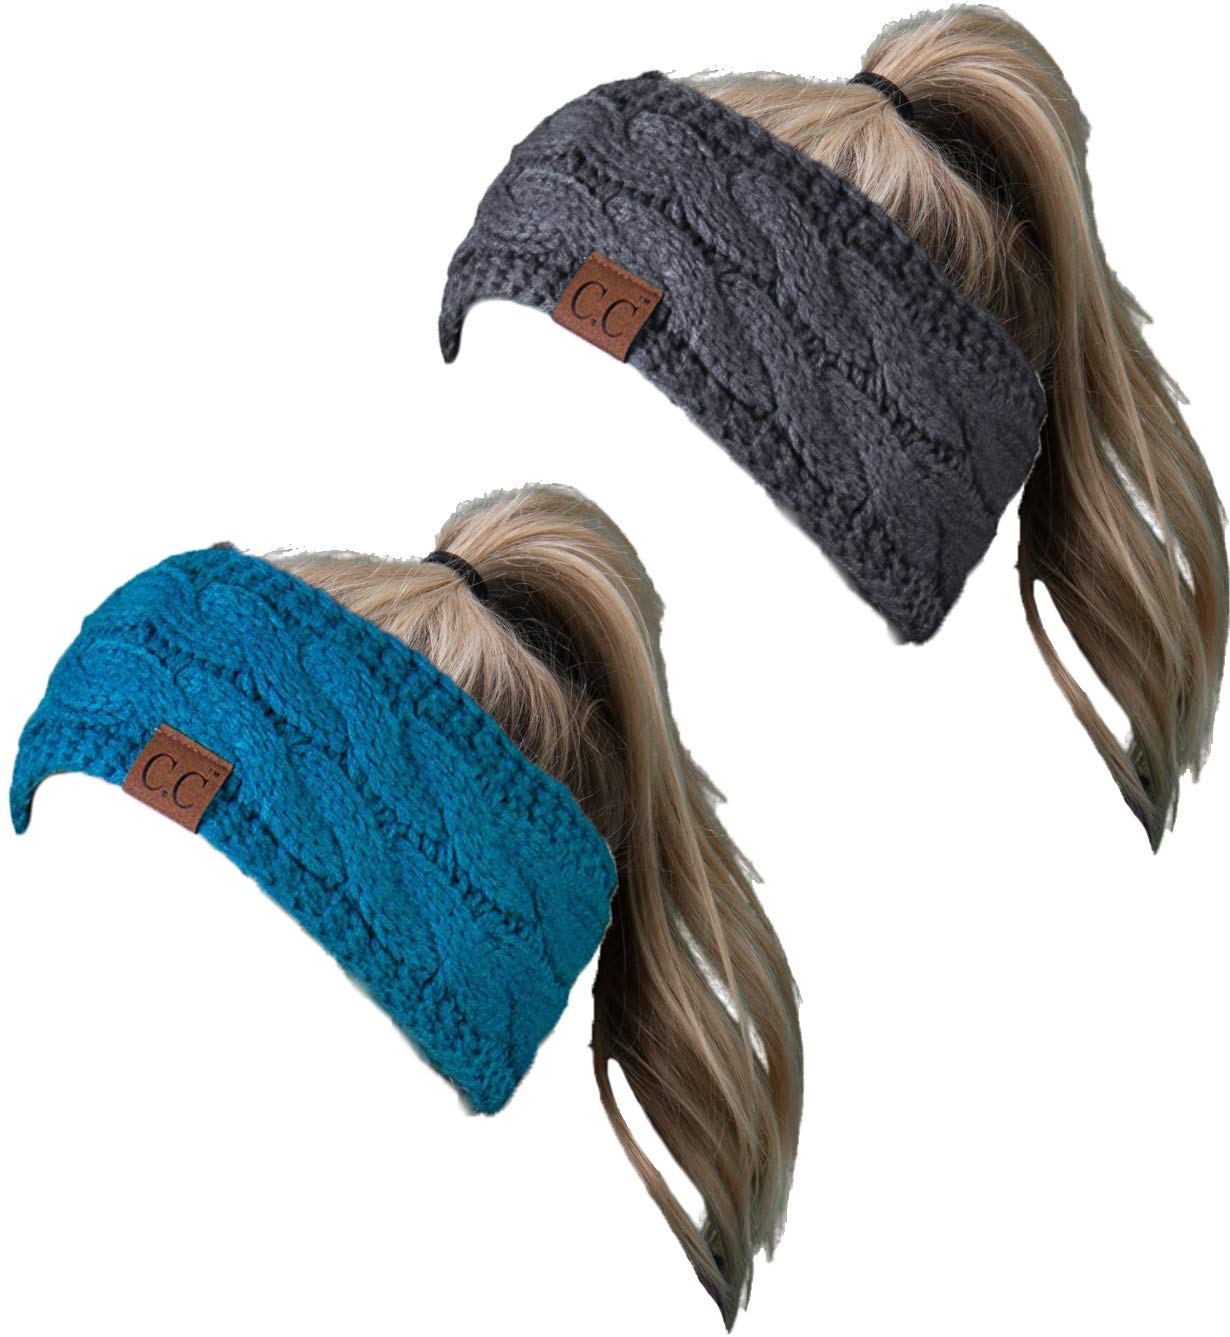 HW-6033-2-20a-4670 Headwrap Bundle - Teal & Solid Charcoal (2 Pack)